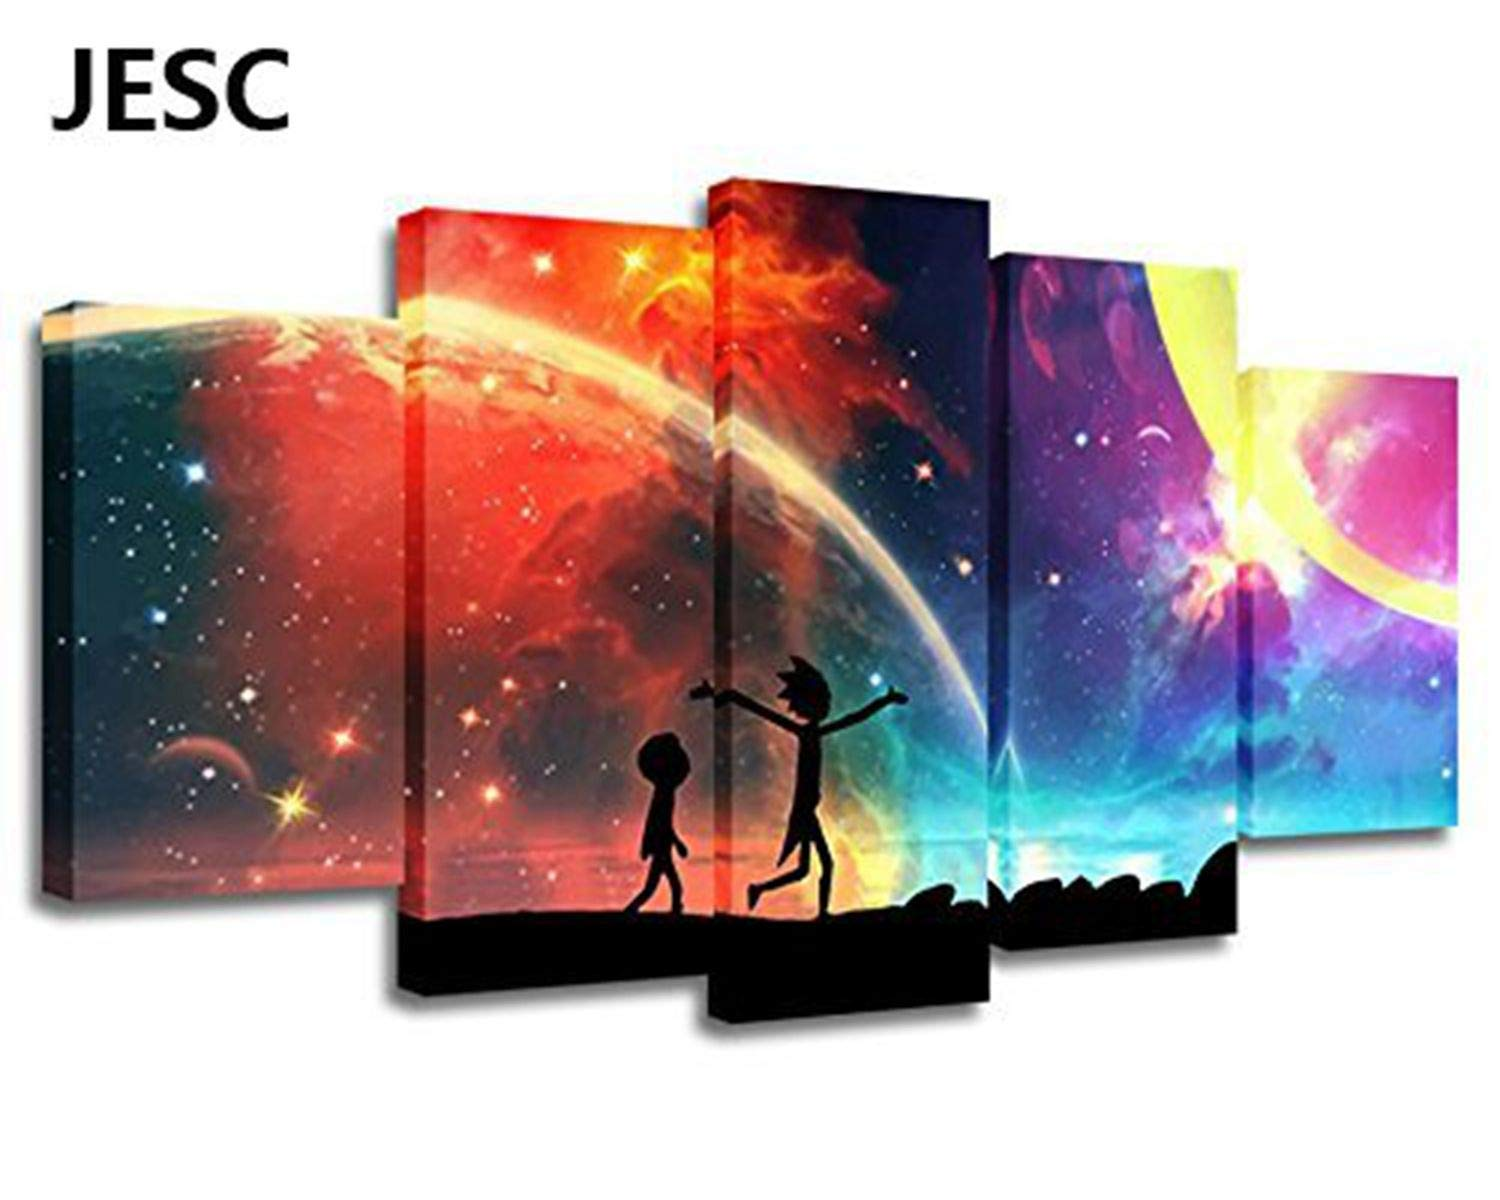 JESC 5 Panels Canvas Painting Rainbow Poster Wall Art Painting Modern Home Decor Picture for Living Room Framework Ready to Hang (with Frame, 20x35cmx2,20x45cmx2,20x55cmx1)